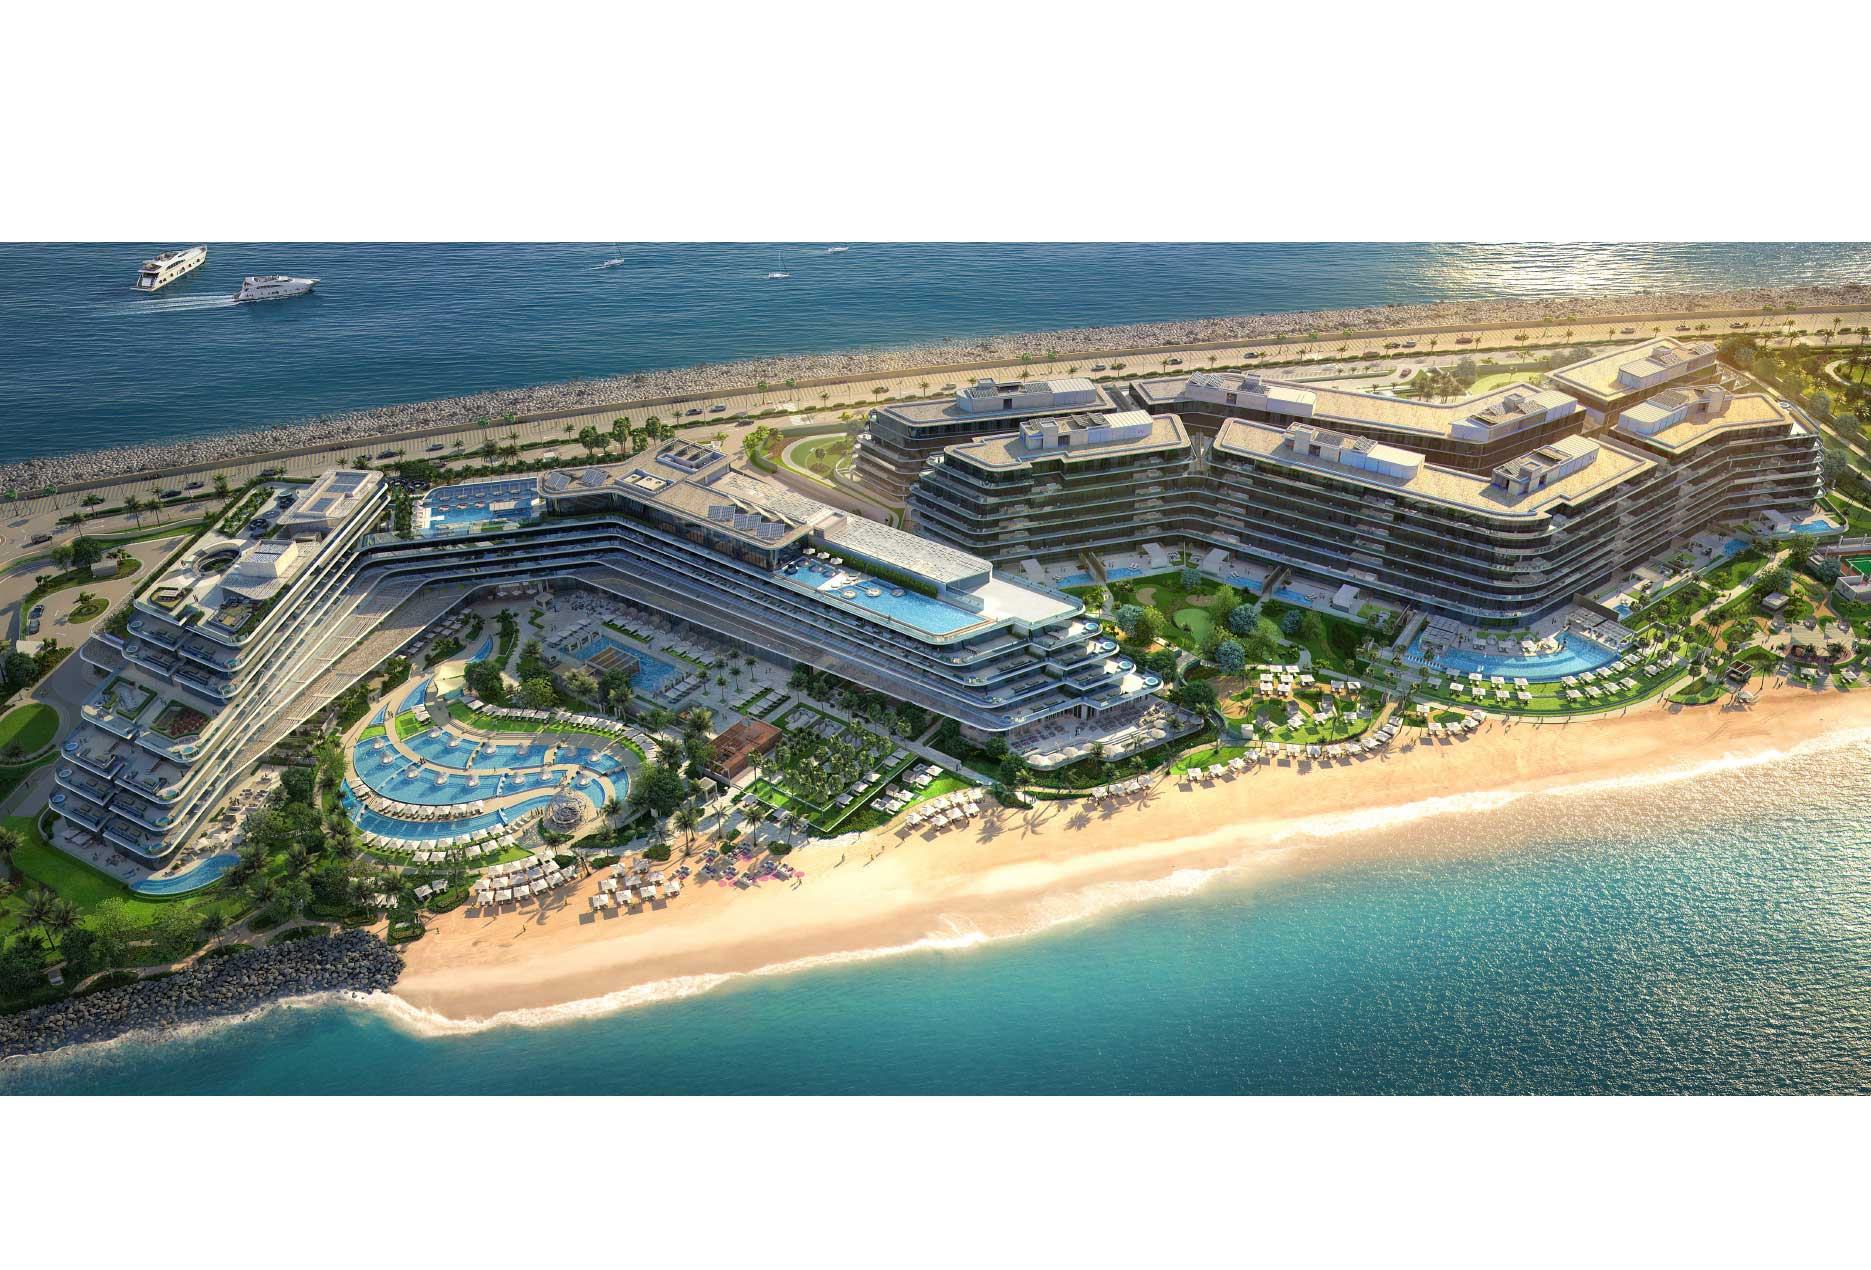 W Hotel And Residence Palm Jumeirah Lms International